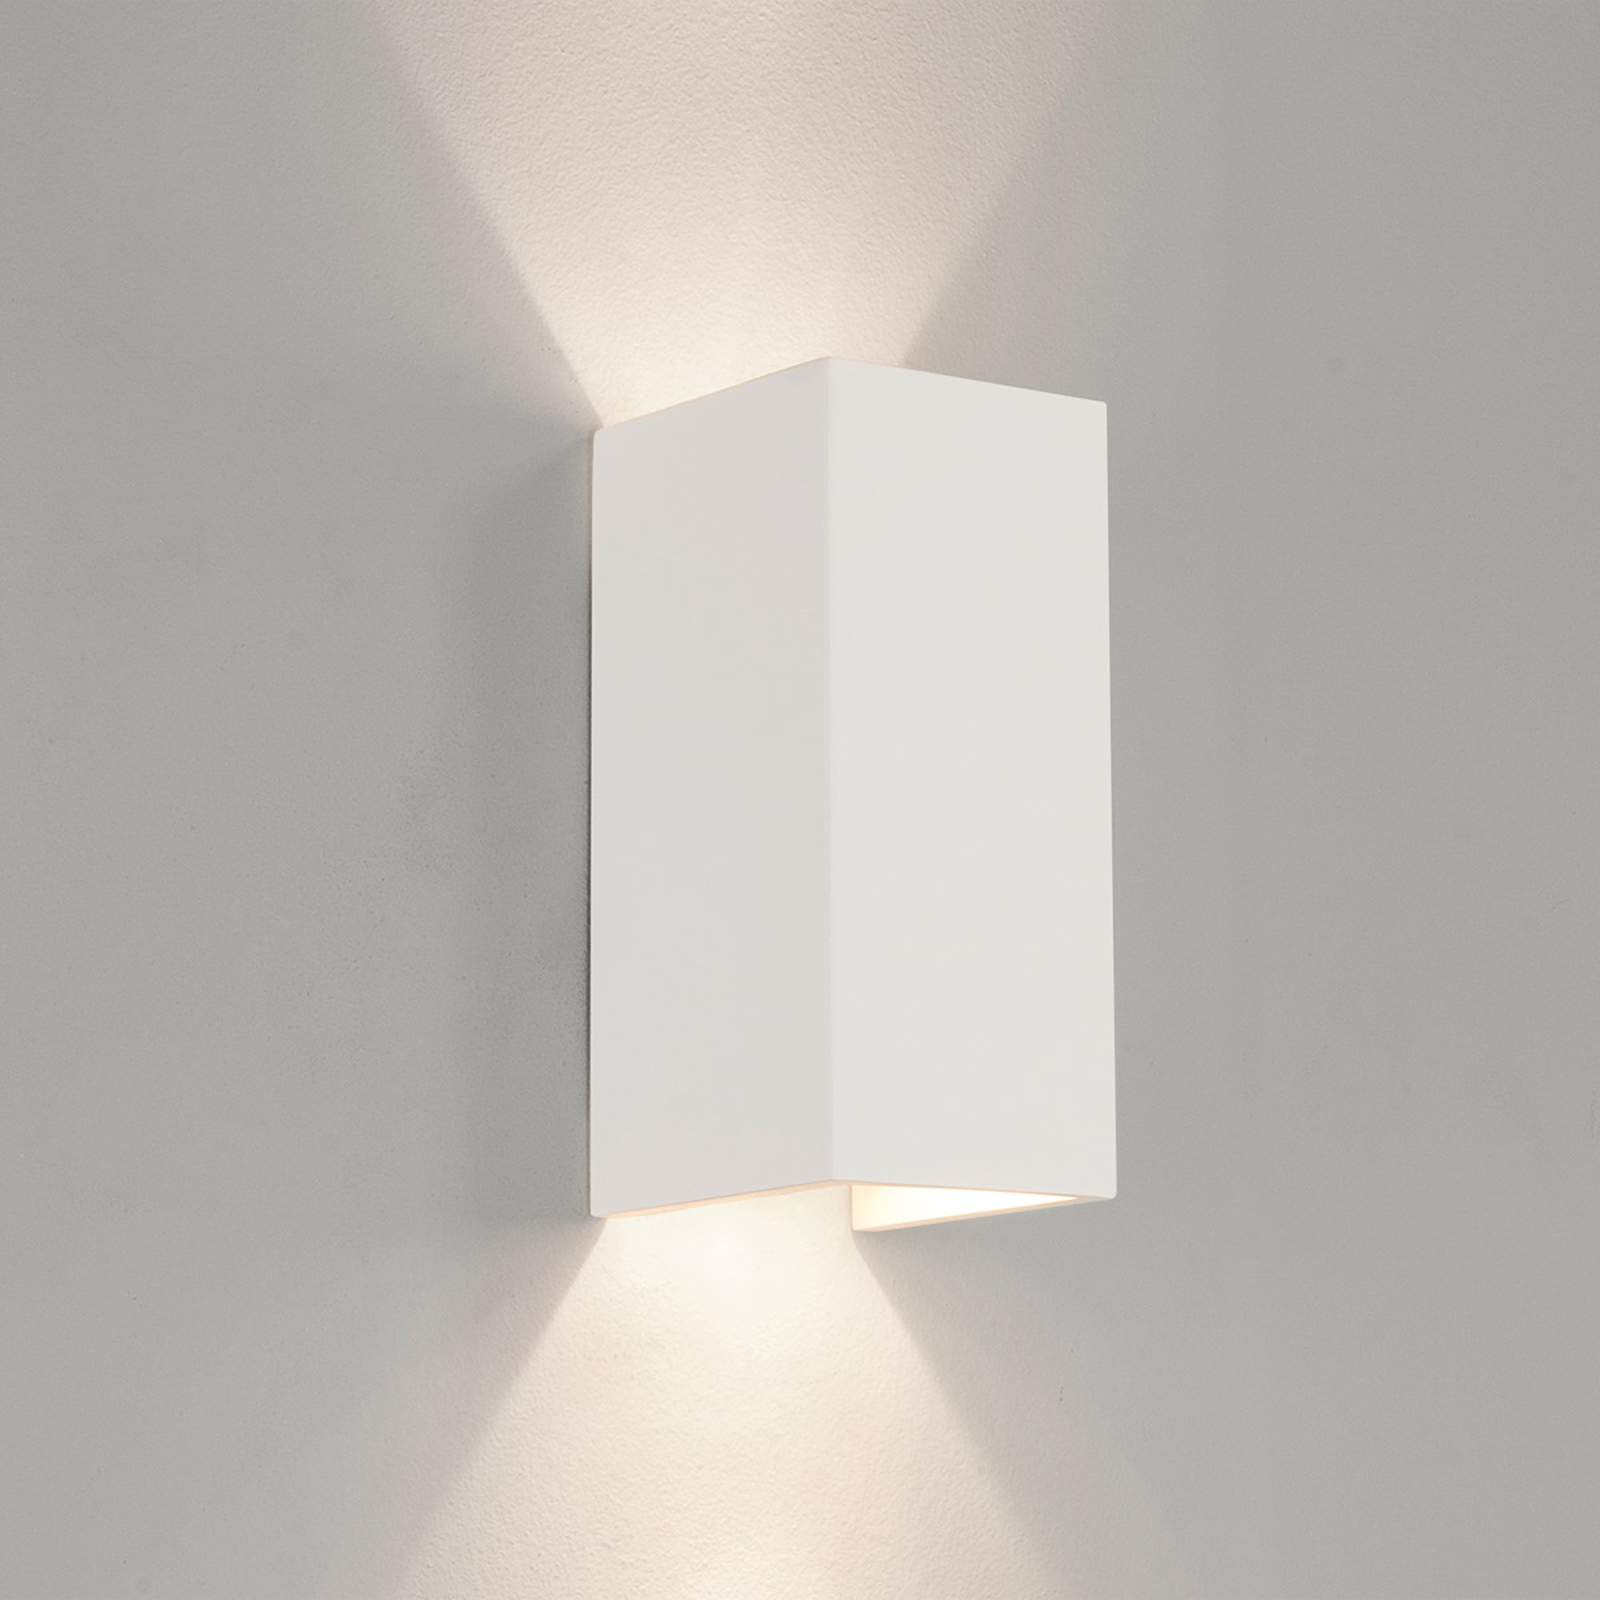 Astro Parma 210 wandlamp in wit